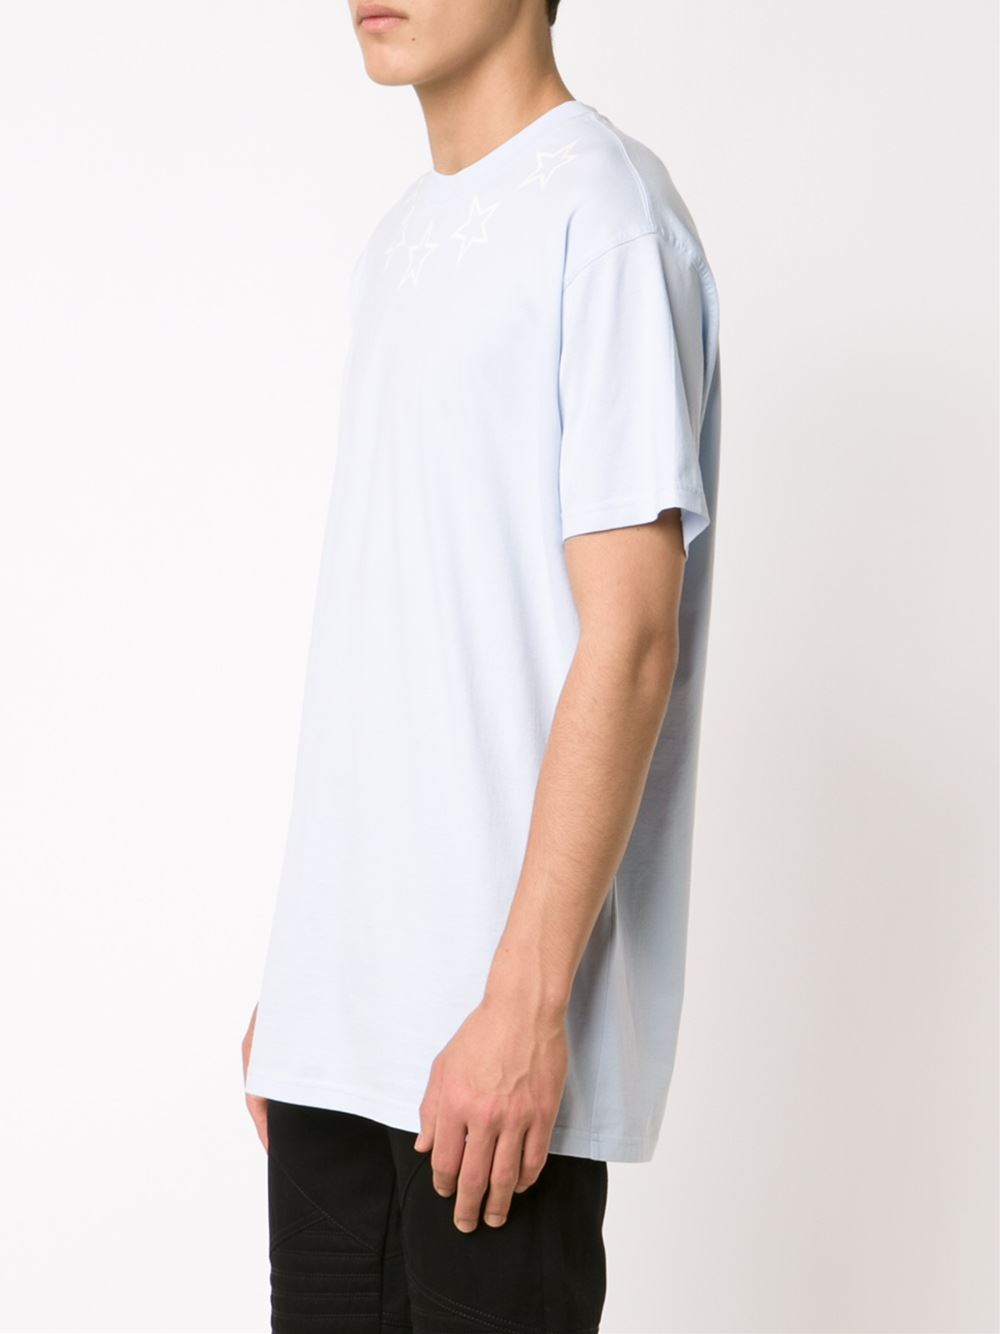 Givenchy star print t shirt in white for men blue lyst for Givenchy star t shirt